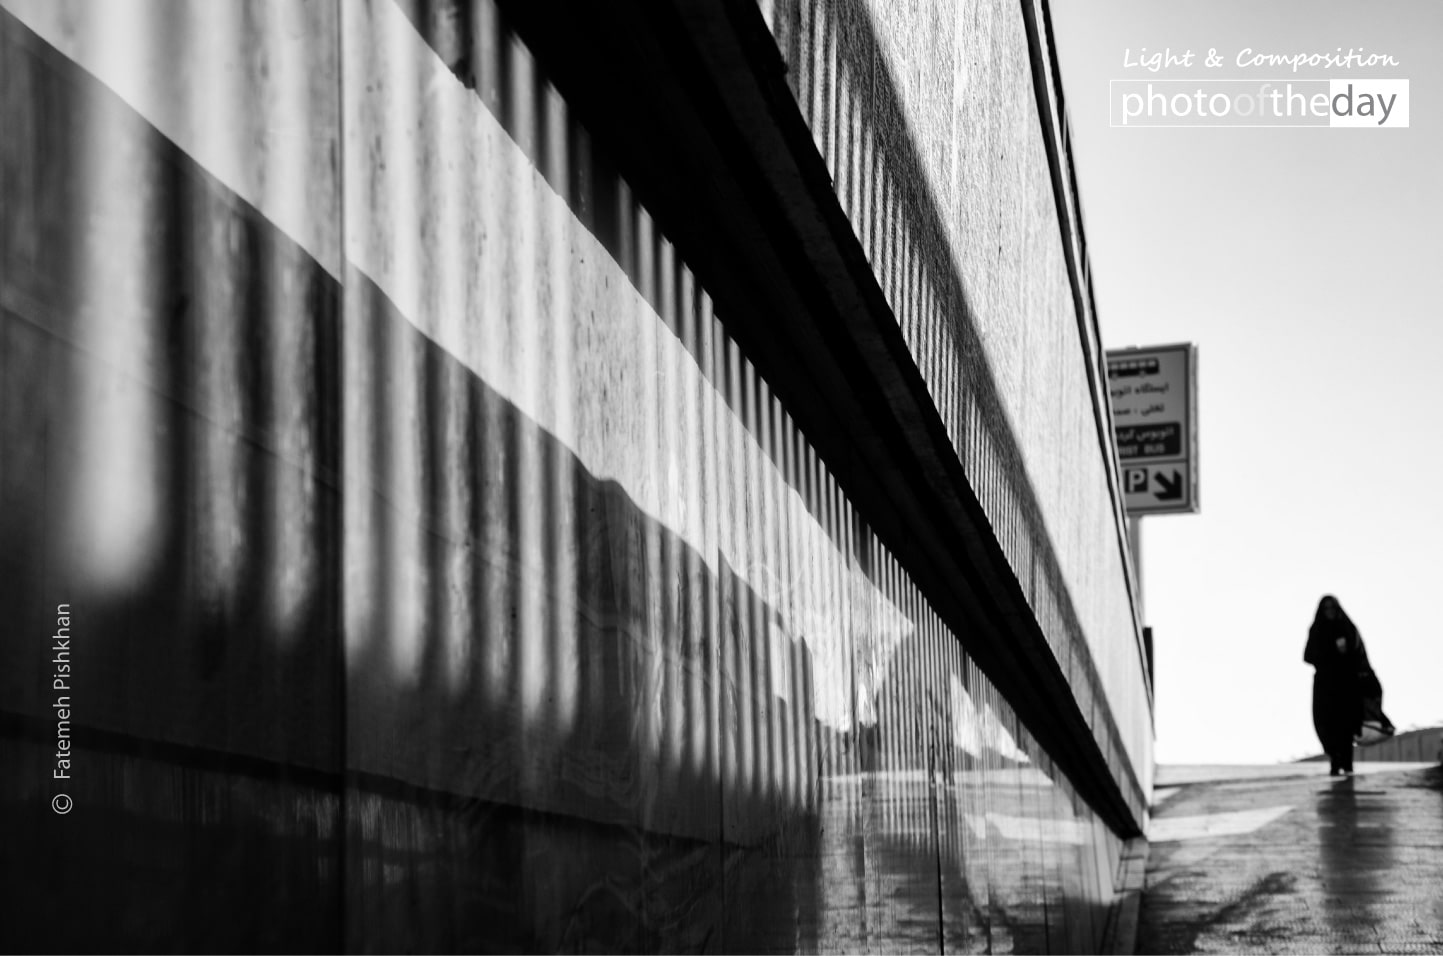 Underpass by Fatemeh Pishkhan